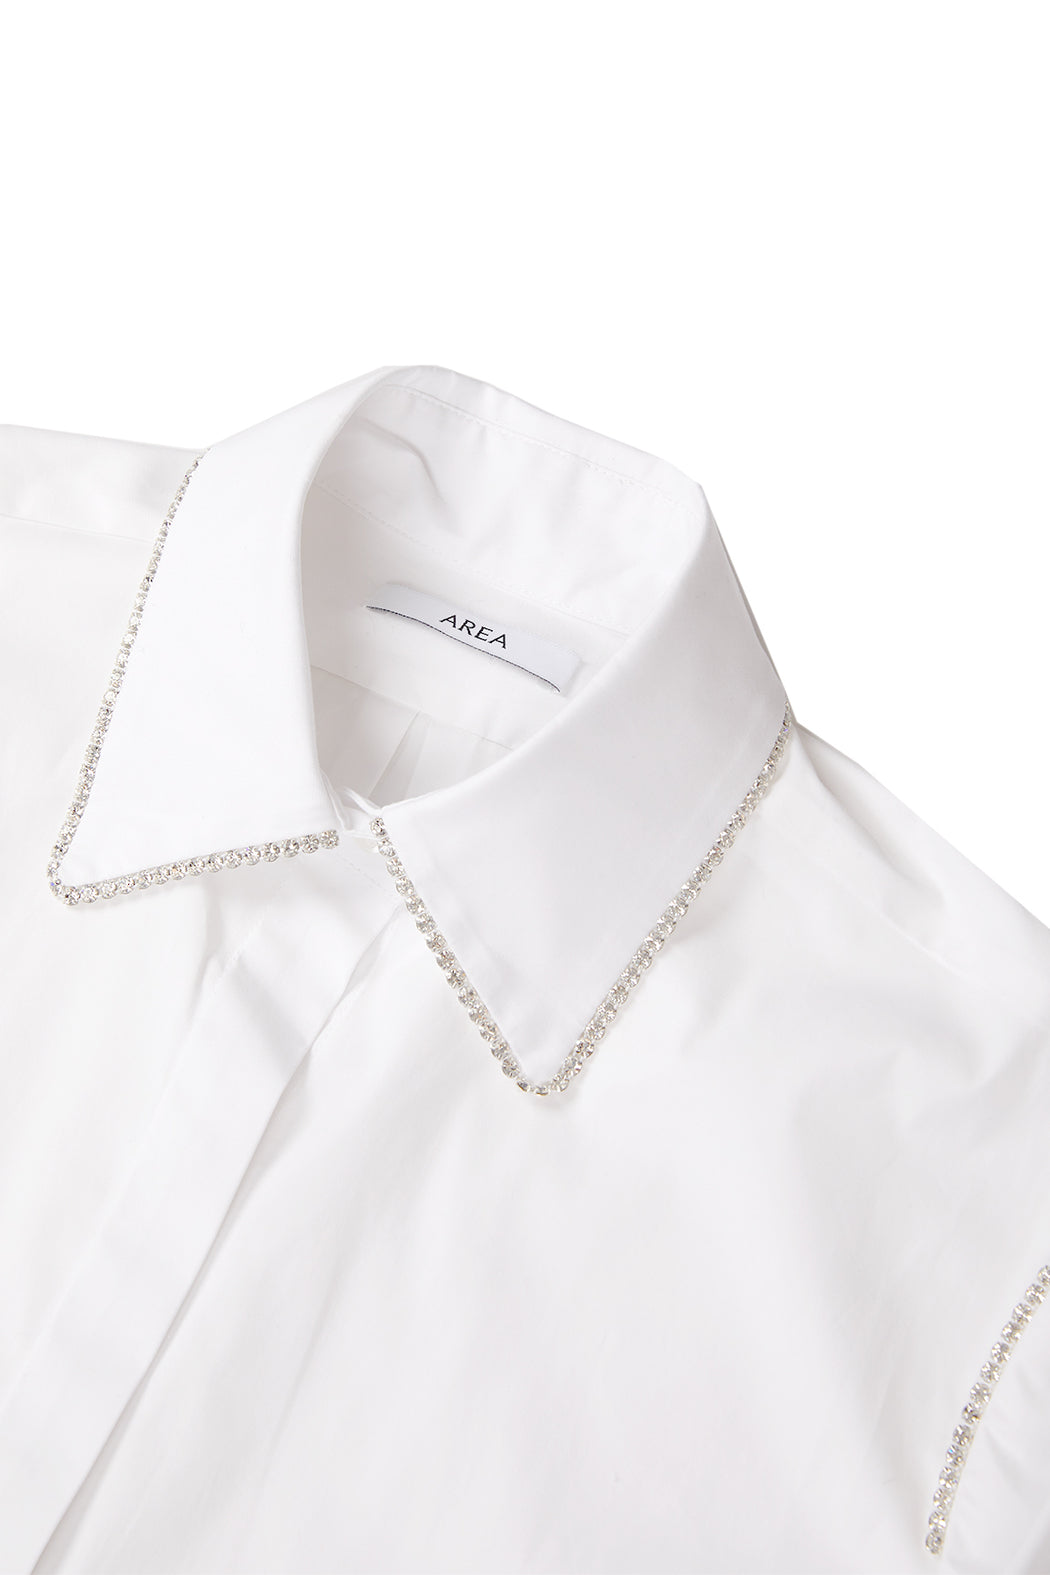 Button Down with Cargo Pocket Sleeve - White